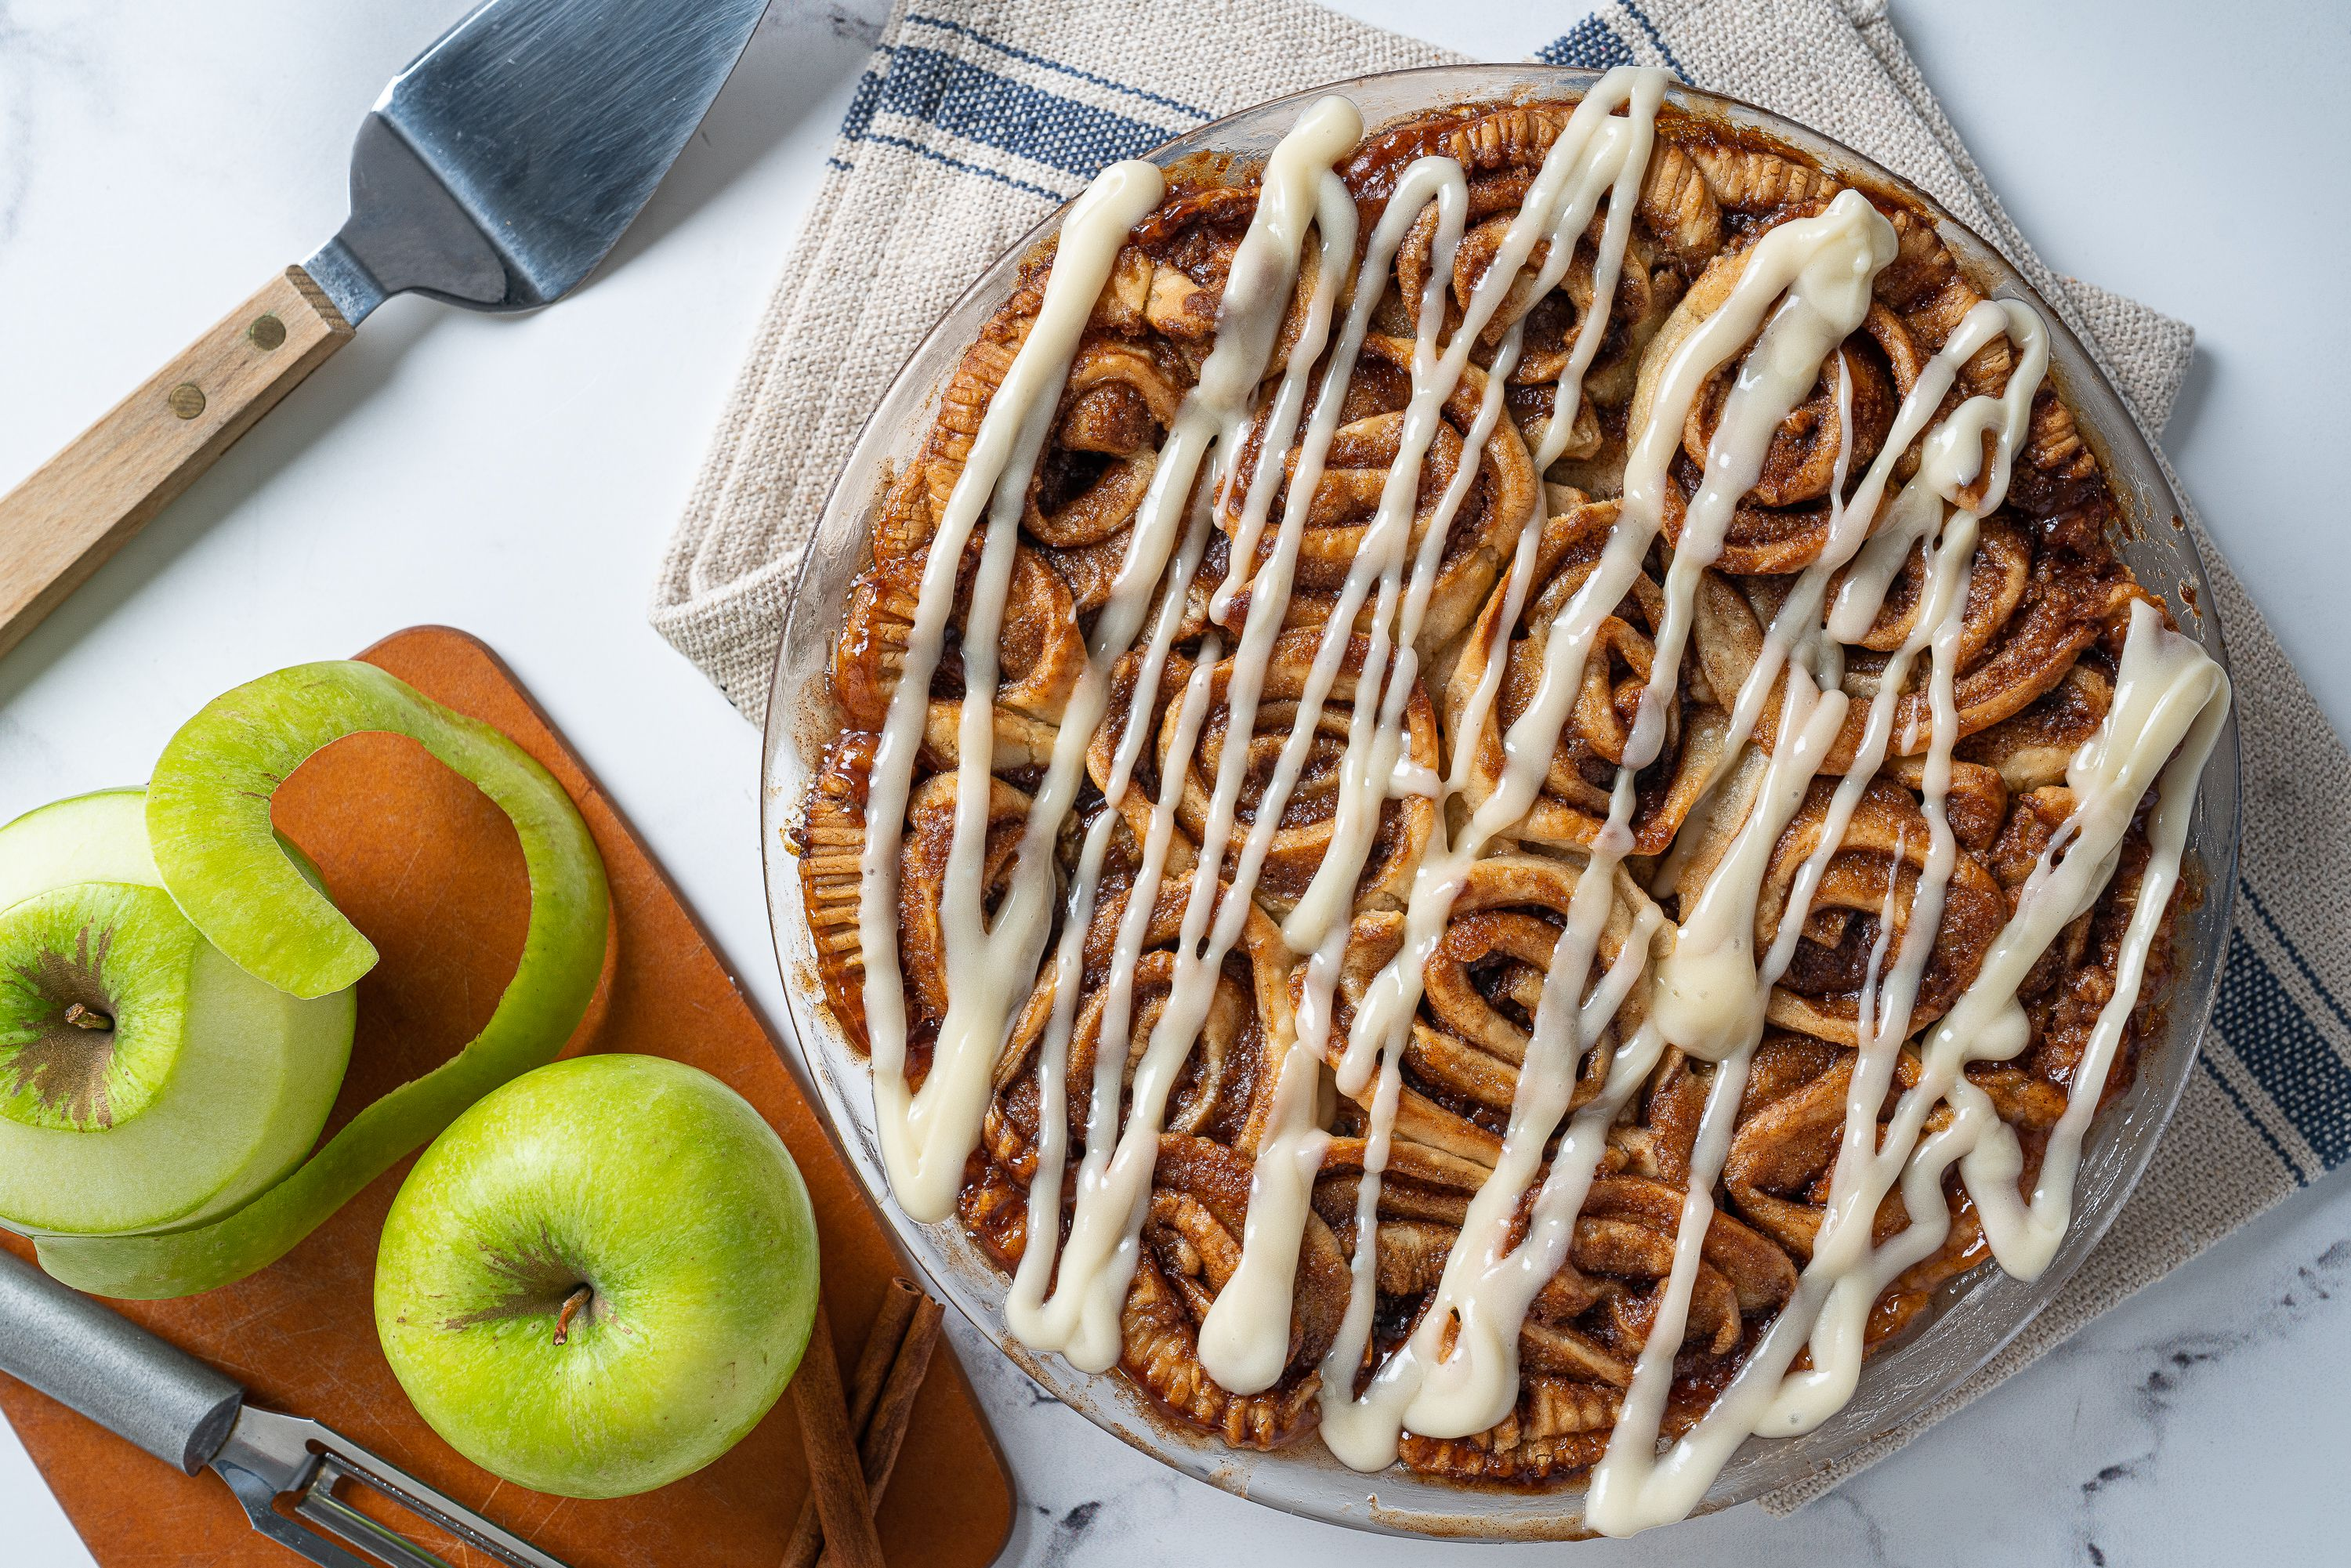 Combine Cinnamon Rolls and Apple Pie Into One Unbelievable Fall Dessert